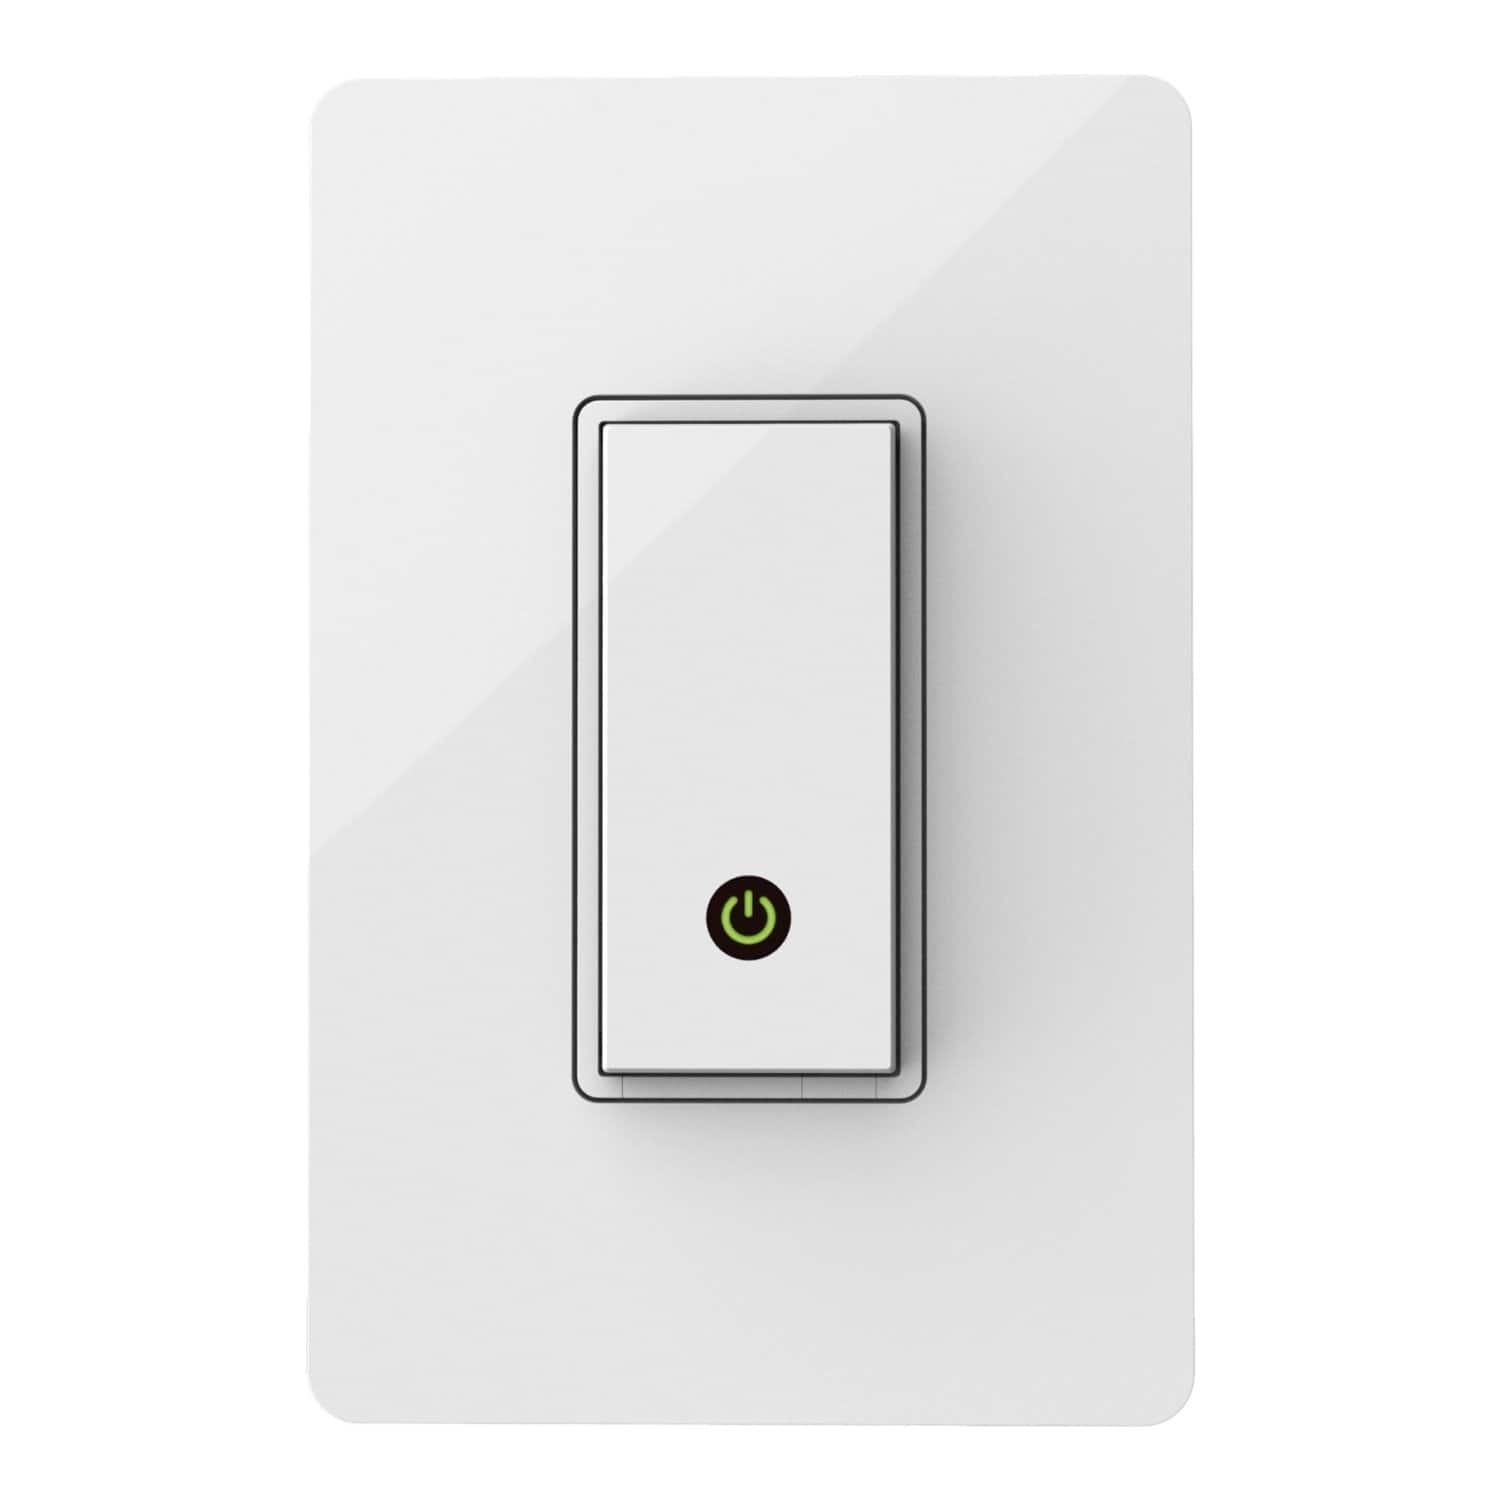 Belkin F7C030fc WeMo Light Switch 2 pack $69.98 free shipping @ Newegg